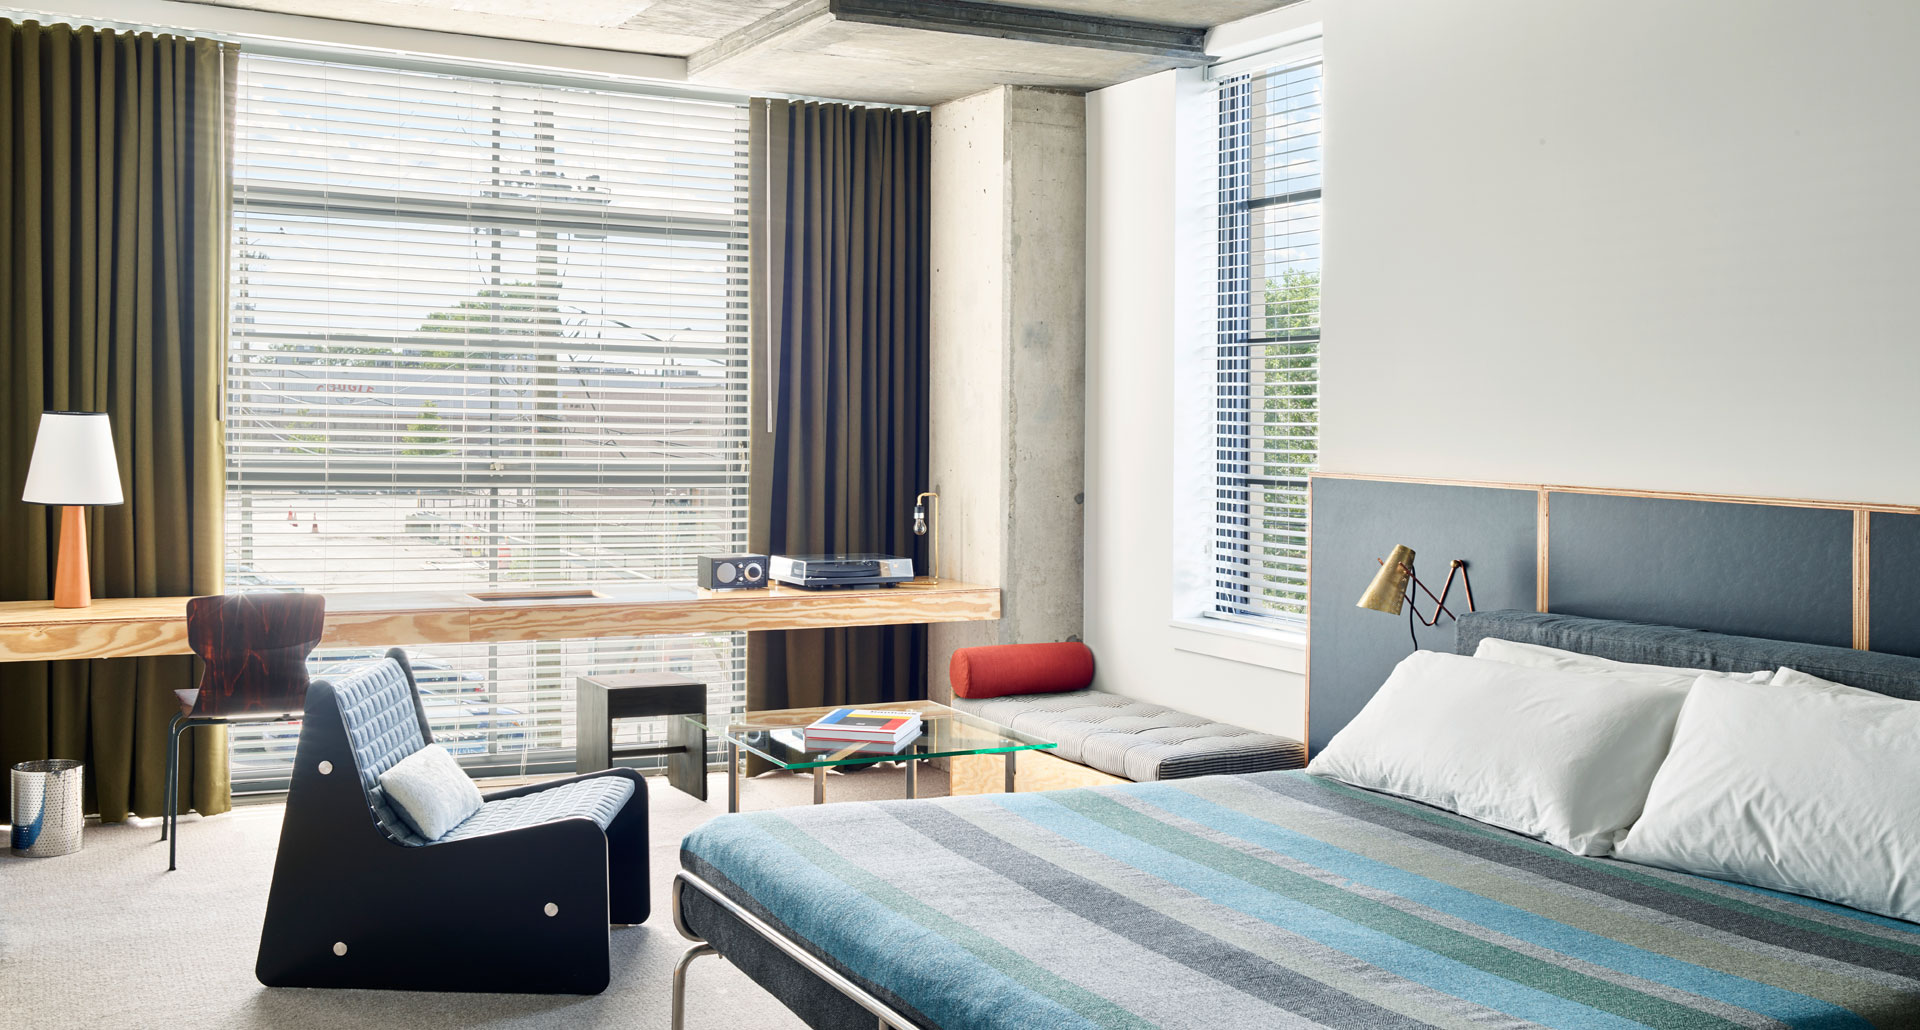 Ace Hotel Chicago - boutique hotel in Chicago